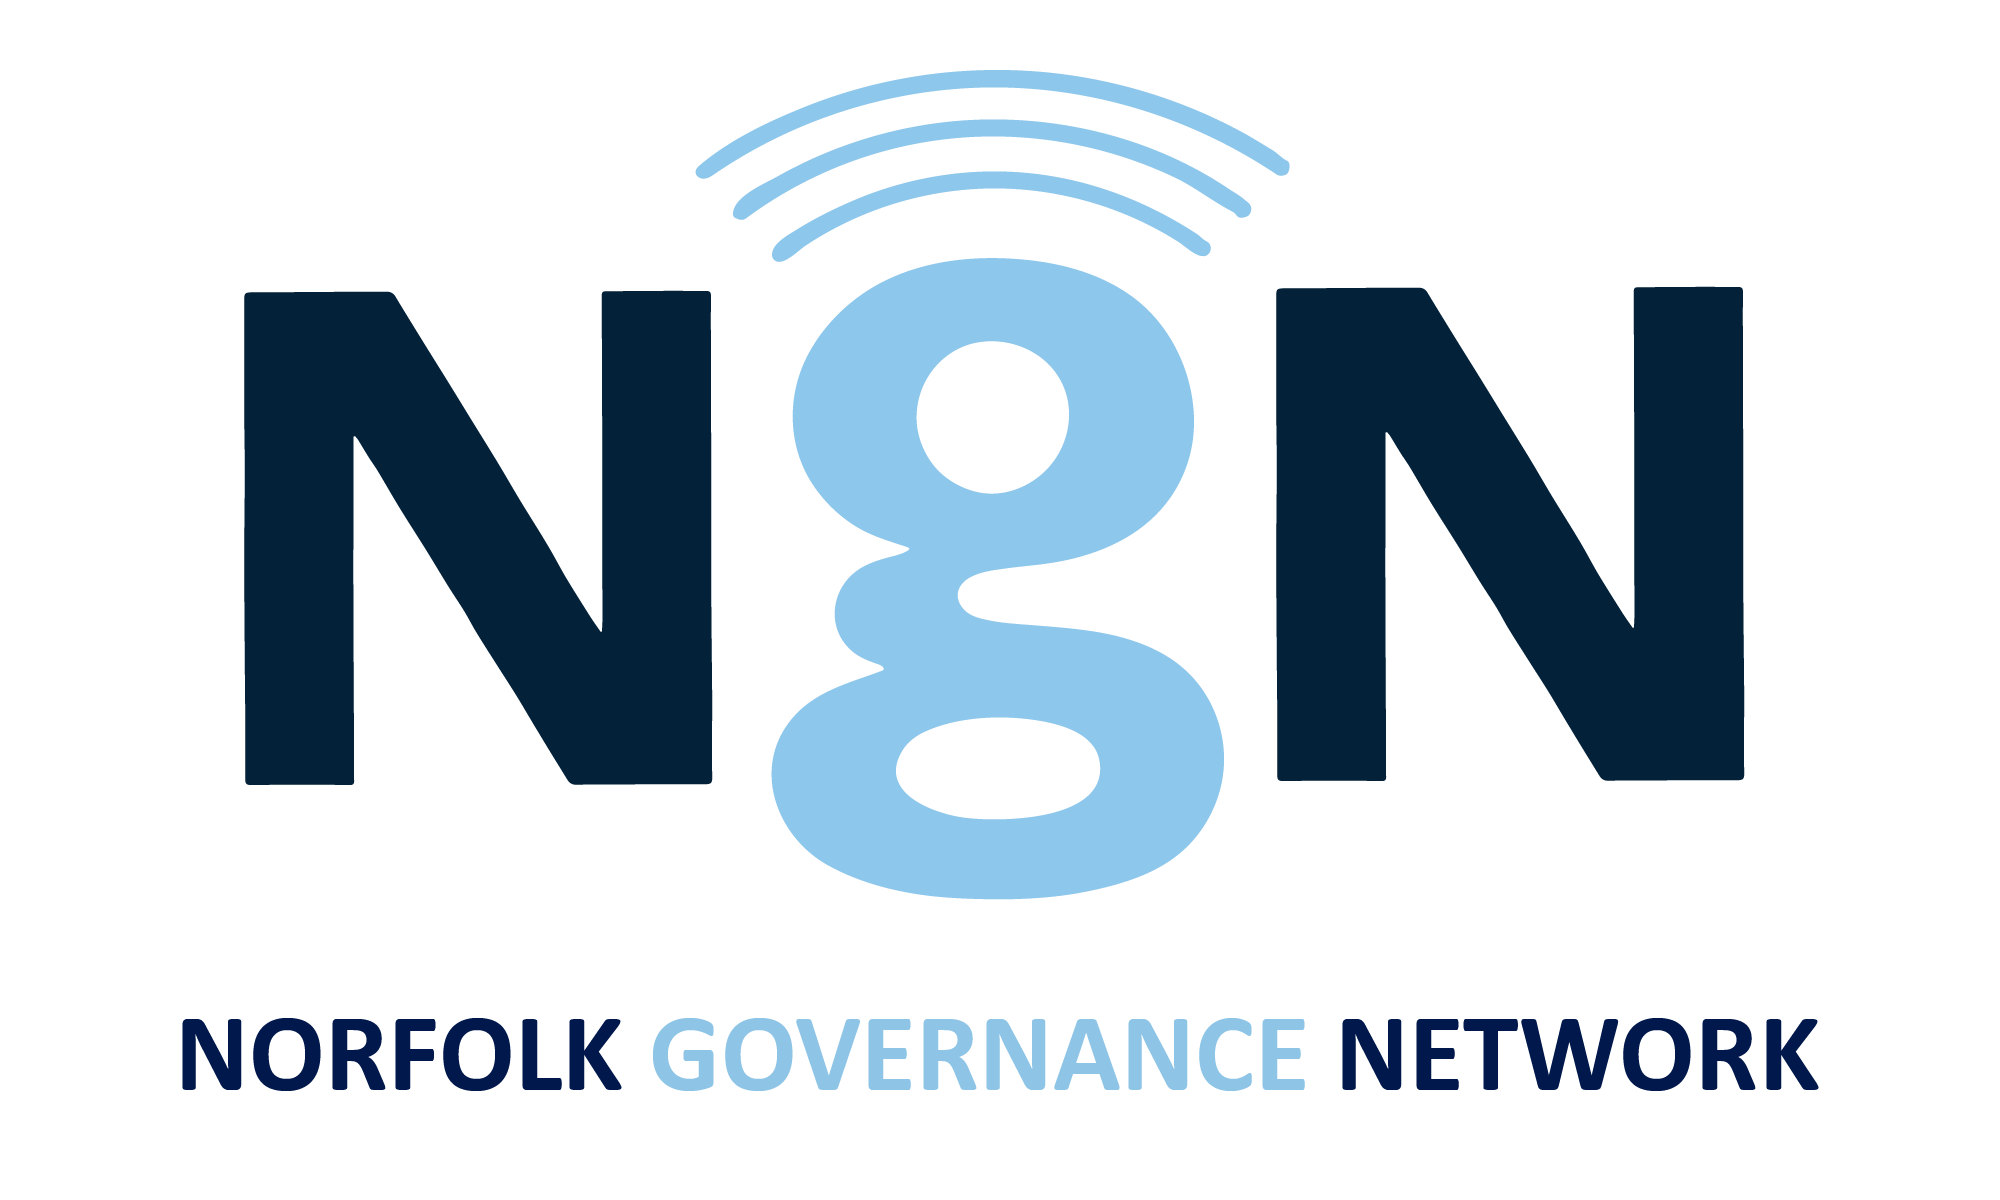 Norfolk Governance Network logo